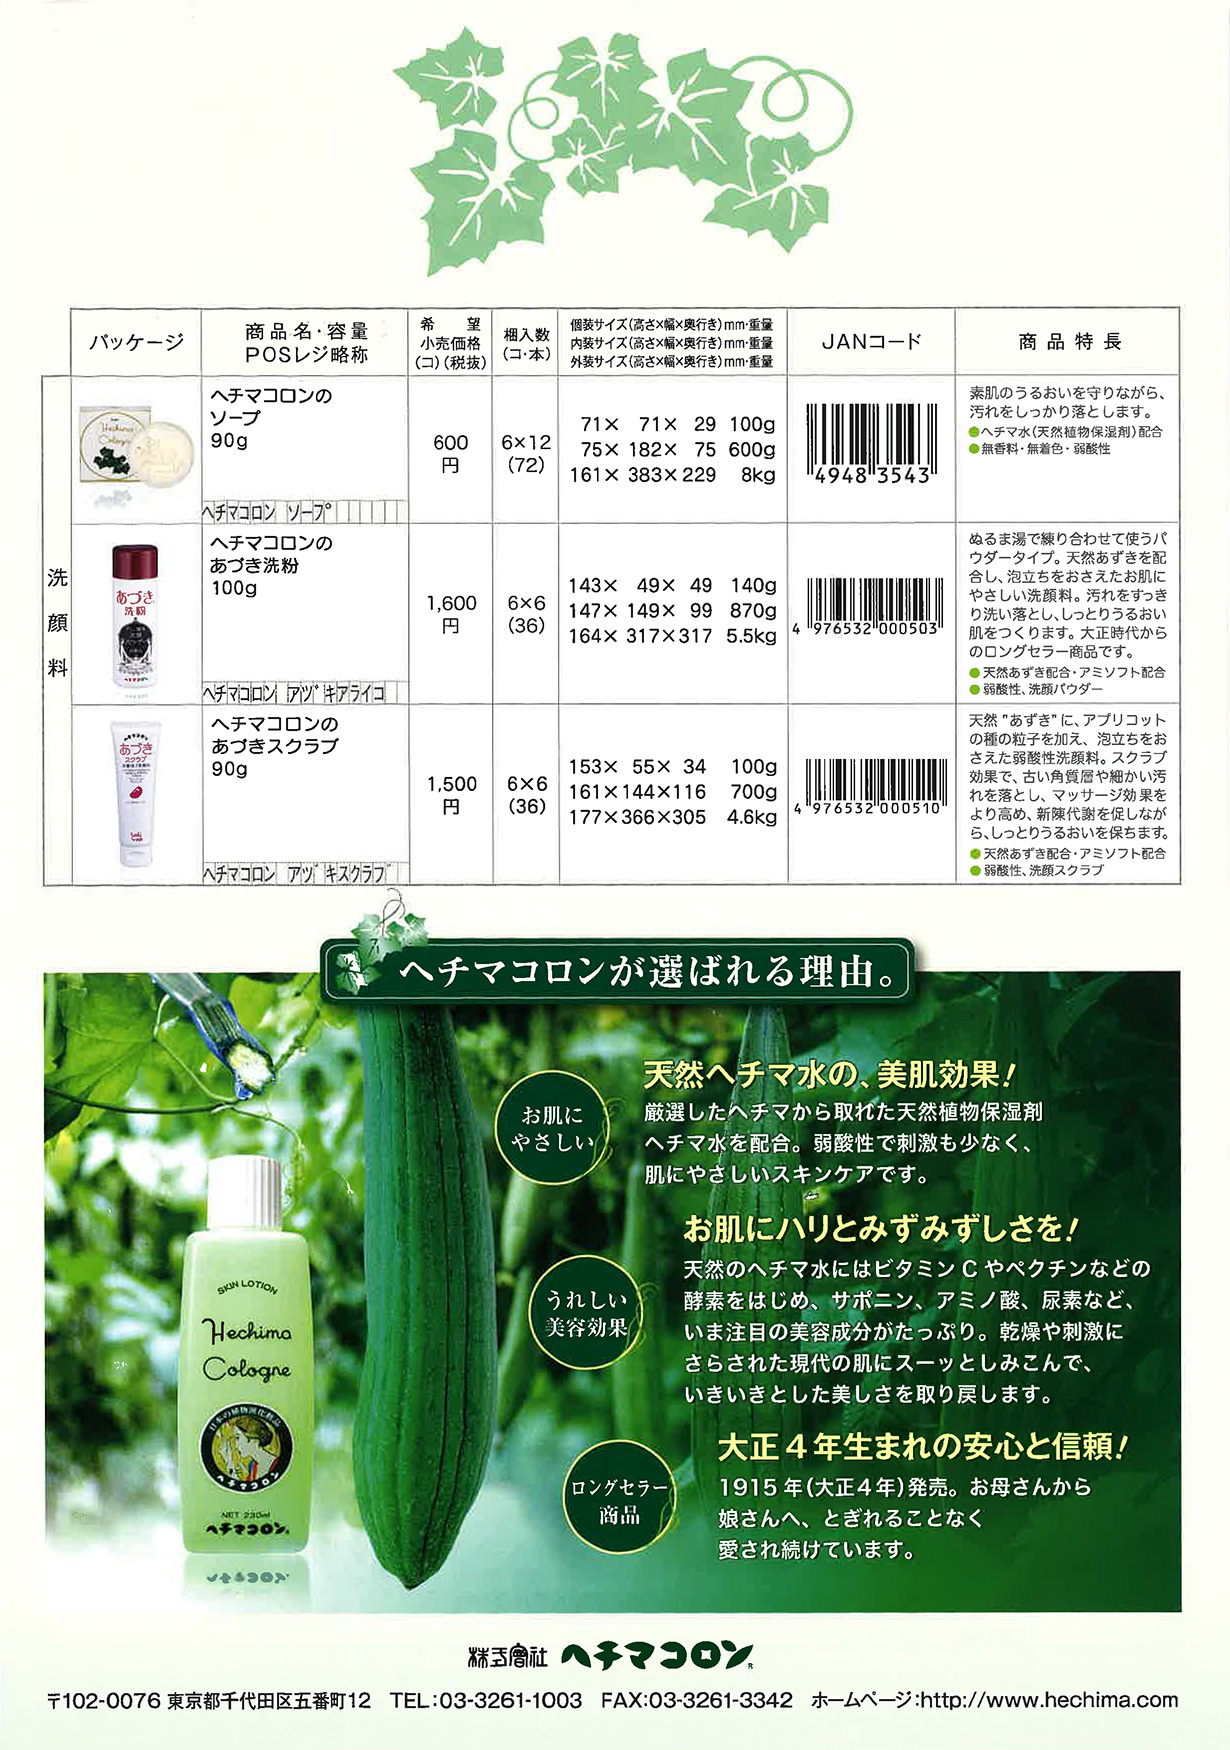 Hechima Cologne® item List (2)